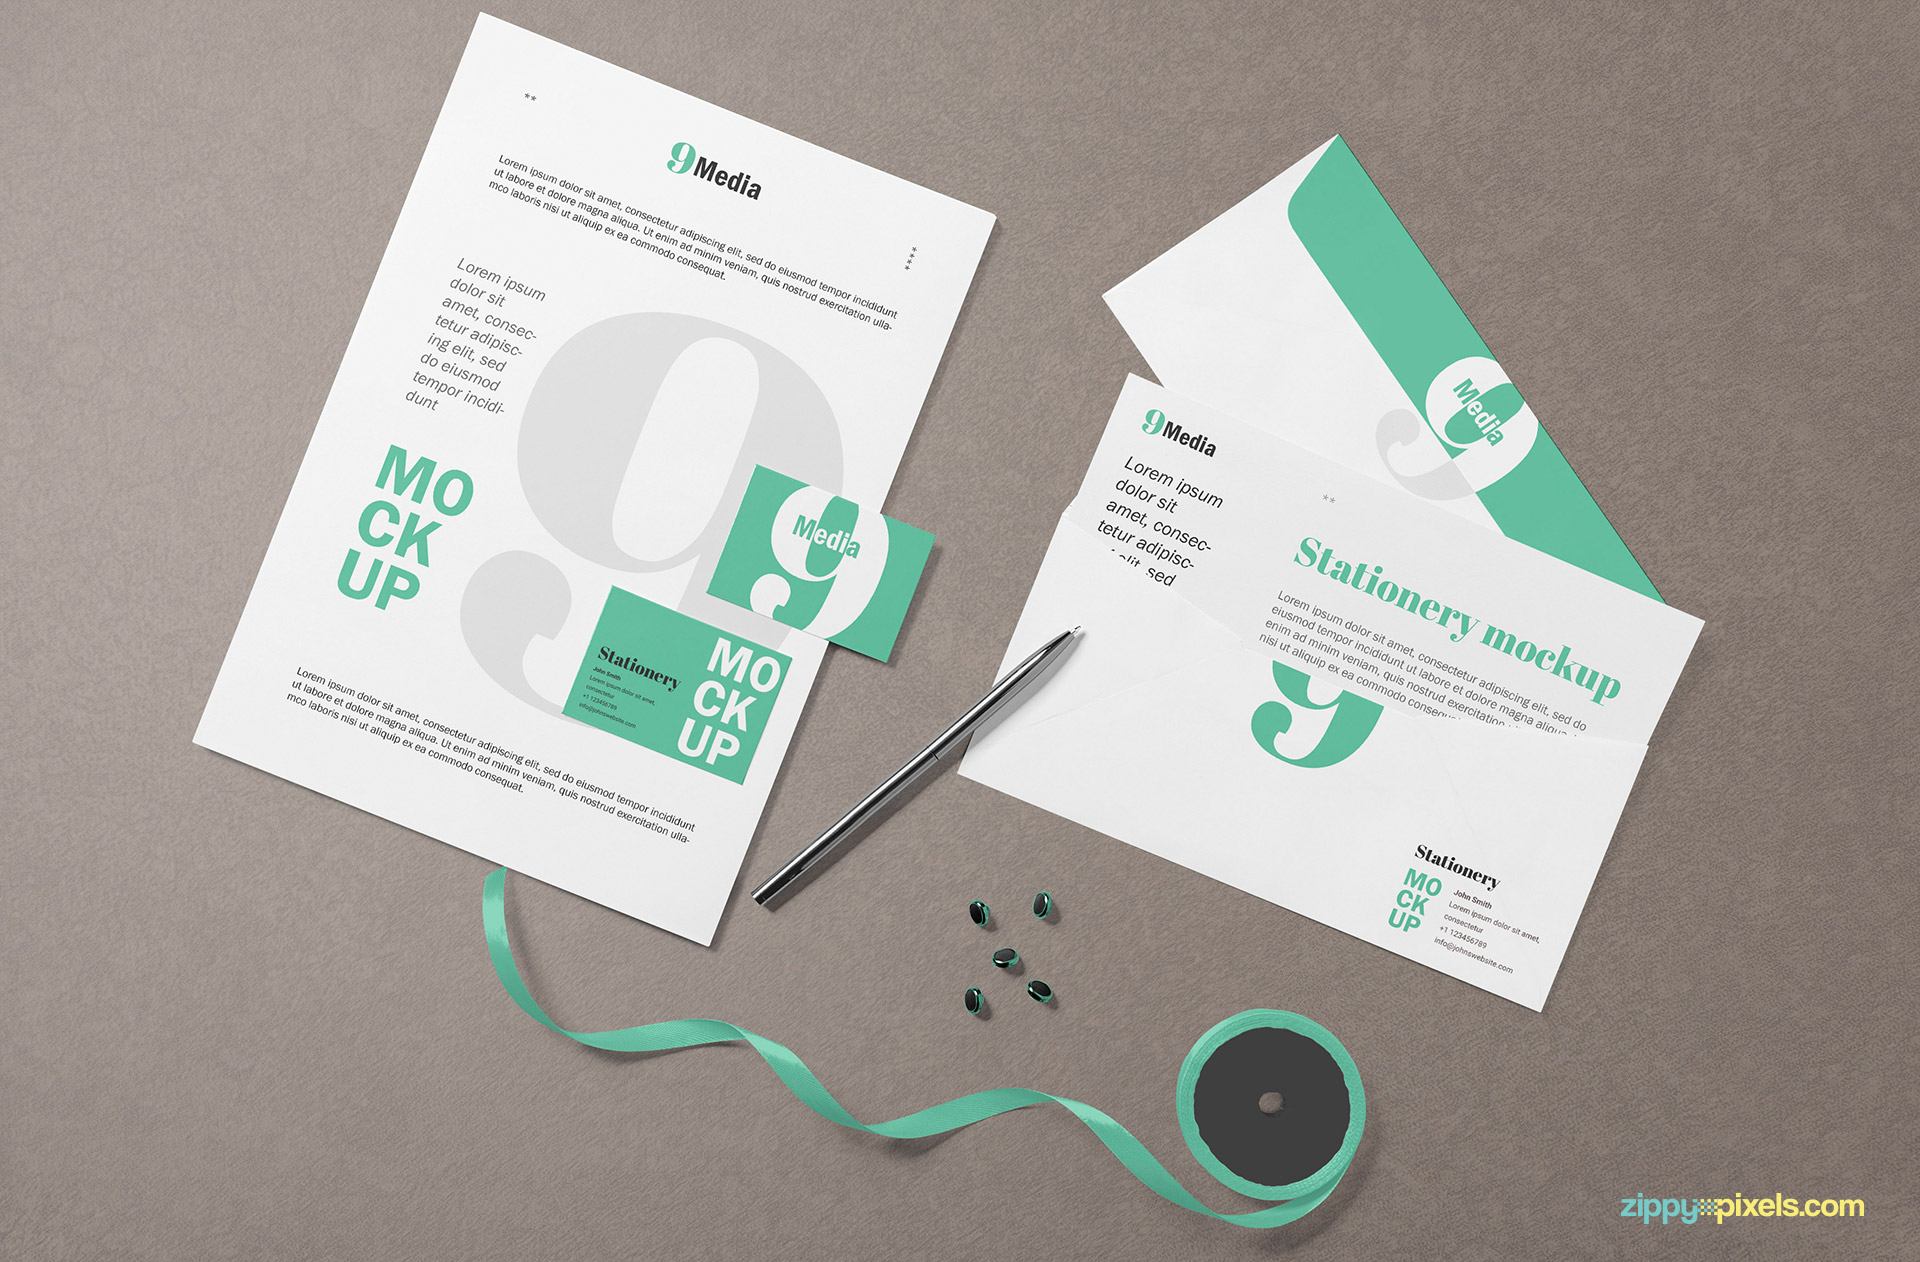 Fully customizable stationery branding designs.